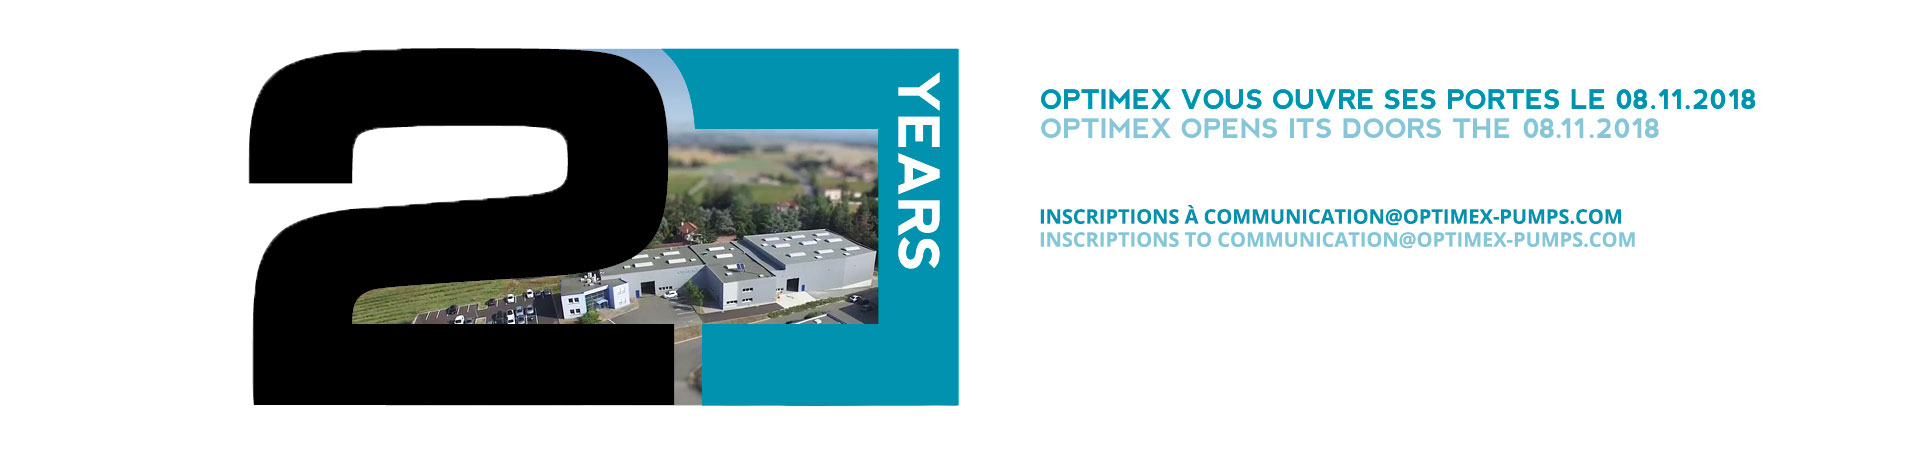 optimex slide portes ouvertes